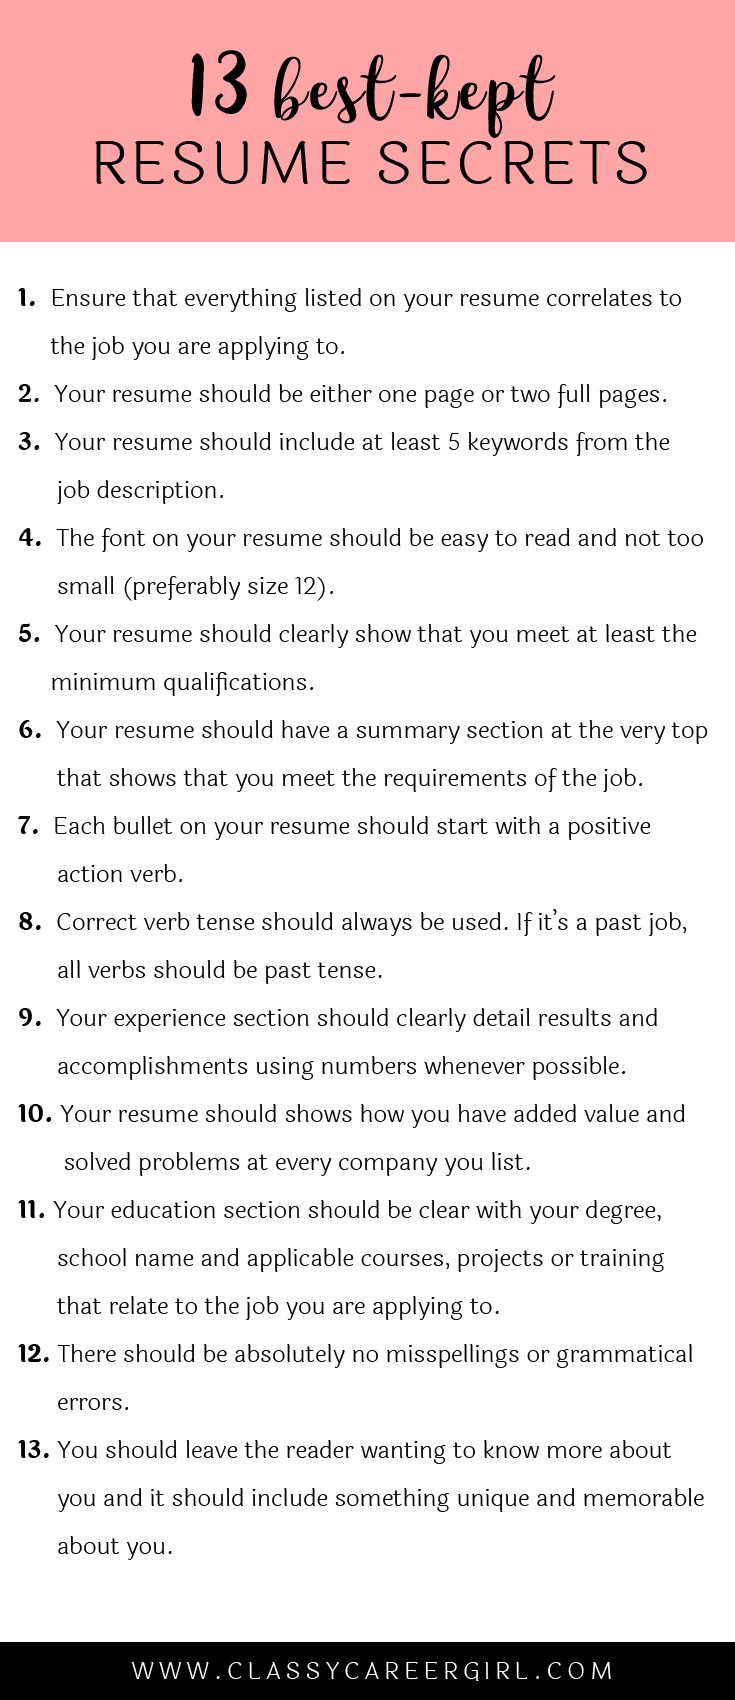 Opposenewapstandardsus  Outstanding  Ideas About Resume On Pinterest  Cv Format Resume Cv And  With Fascinating Some Hiring Managers Will Toss Your Resume Out If You Dont Know These  With Delightful Sample Resume Profile Statements Also Senior Pastor Resume In Addition How To Start A Resume For A Job And Criminal Justice Resumes As Well As How To Write A Resume When You Have No Experience Additionally Resume Themes From Pinterestcom With Opposenewapstandardsus  Fascinating  Ideas About Resume On Pinterest  Cv Format Resume Cv And  With Delightful Some Hiring Managers Will Toss Your Resume Out If You Dont Know These  And Outstanding Sample Resume Profile Statements Also Senior Pastor Resume In Addition How To Start A Resume For A Job From Pinterestcom